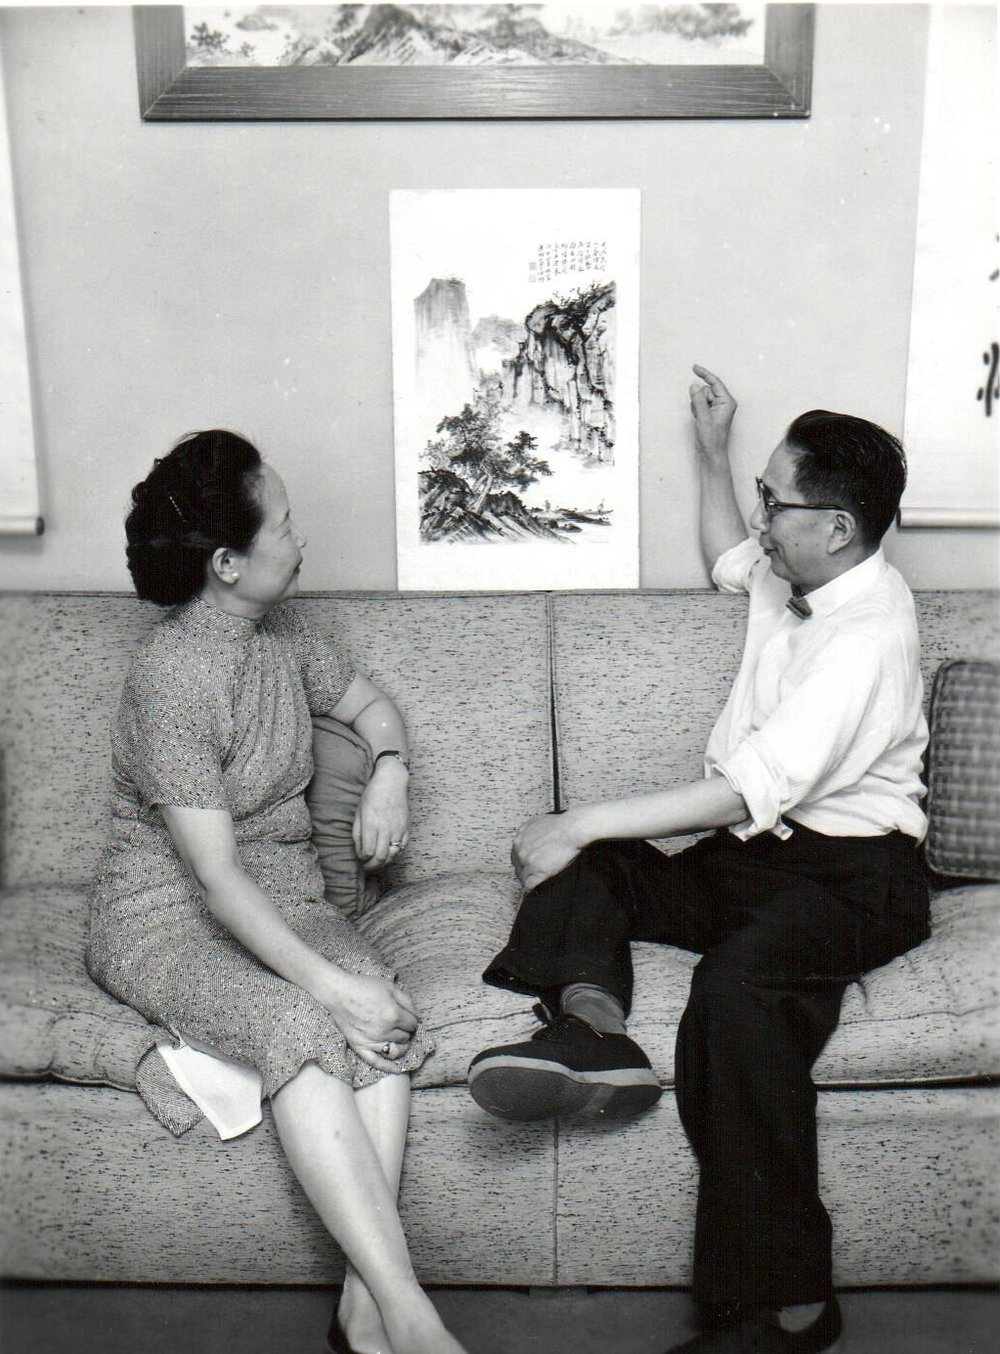 Showing new painting to my mother.jpg